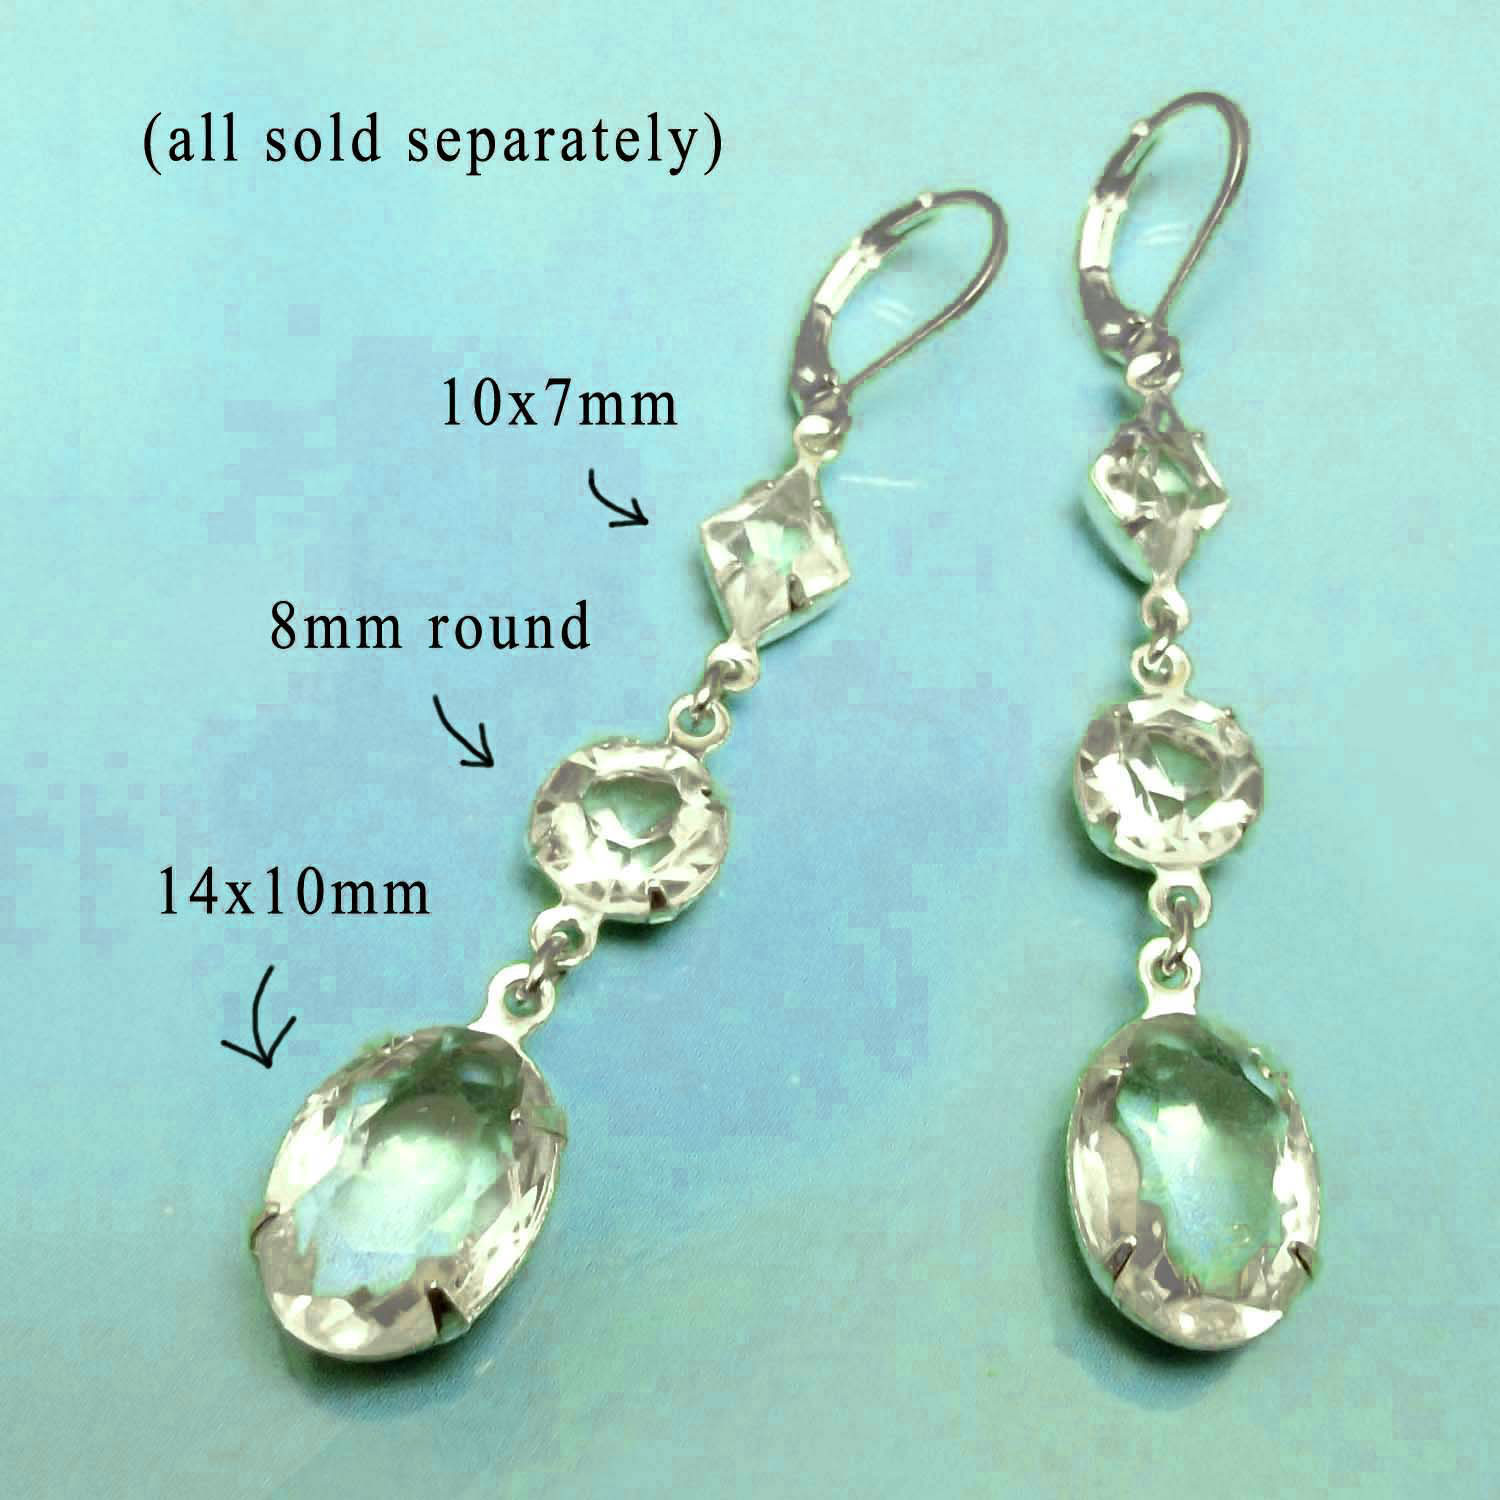 DIY earring design idea featuring clear glass jewels in silver plated brass settings